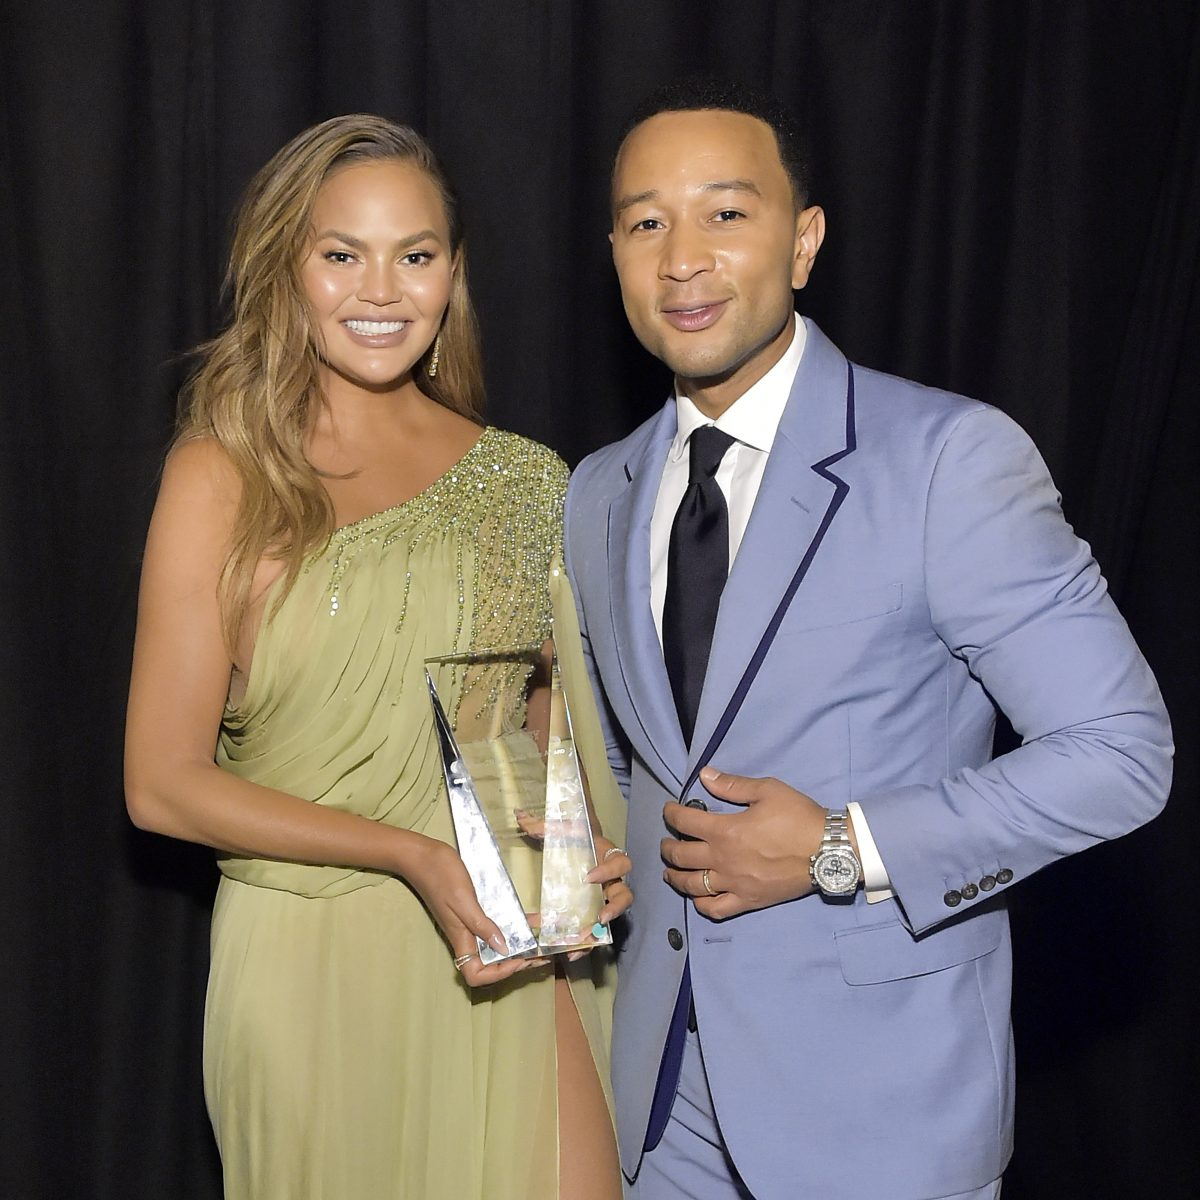 Chrissy Teigen and John Legend attend the 2019 Baby2Baby Gala presented by Paul Mitchel